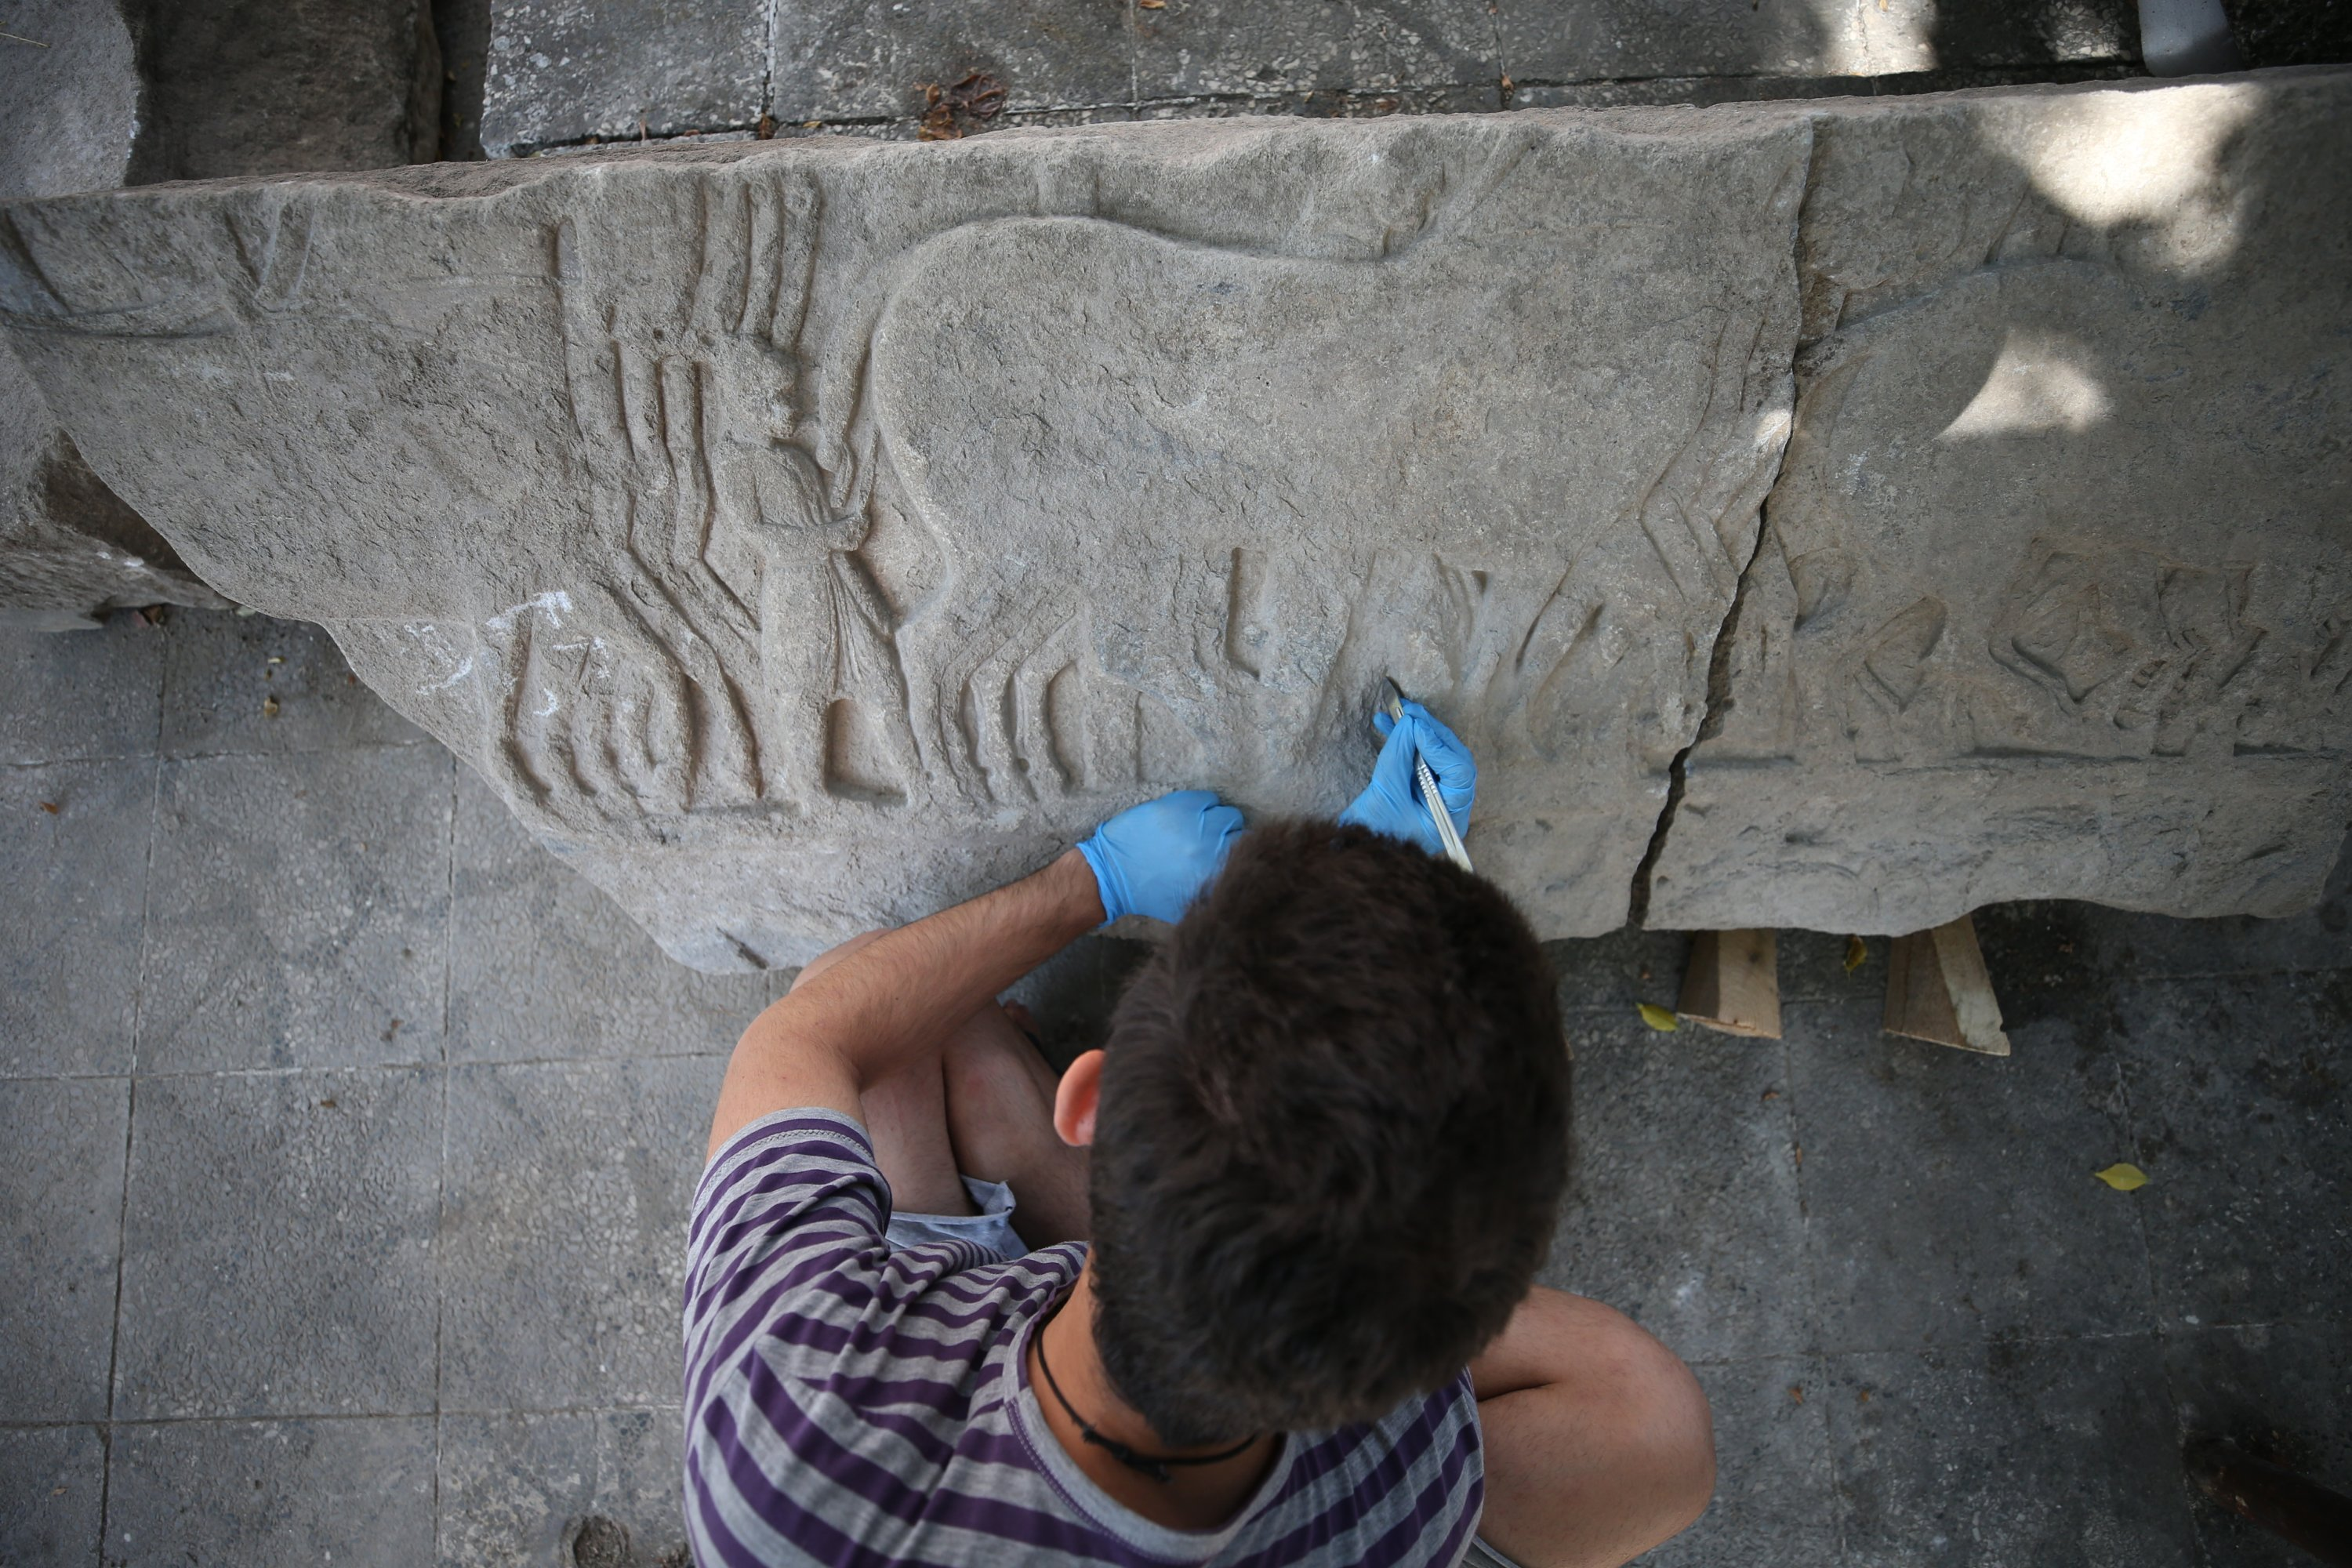 An archaeologist works on an ancient stone relief found in the ancient city of Daskyleion, Balıkesir, western Turkey, Aug. 16, 2021. (AA Photo)